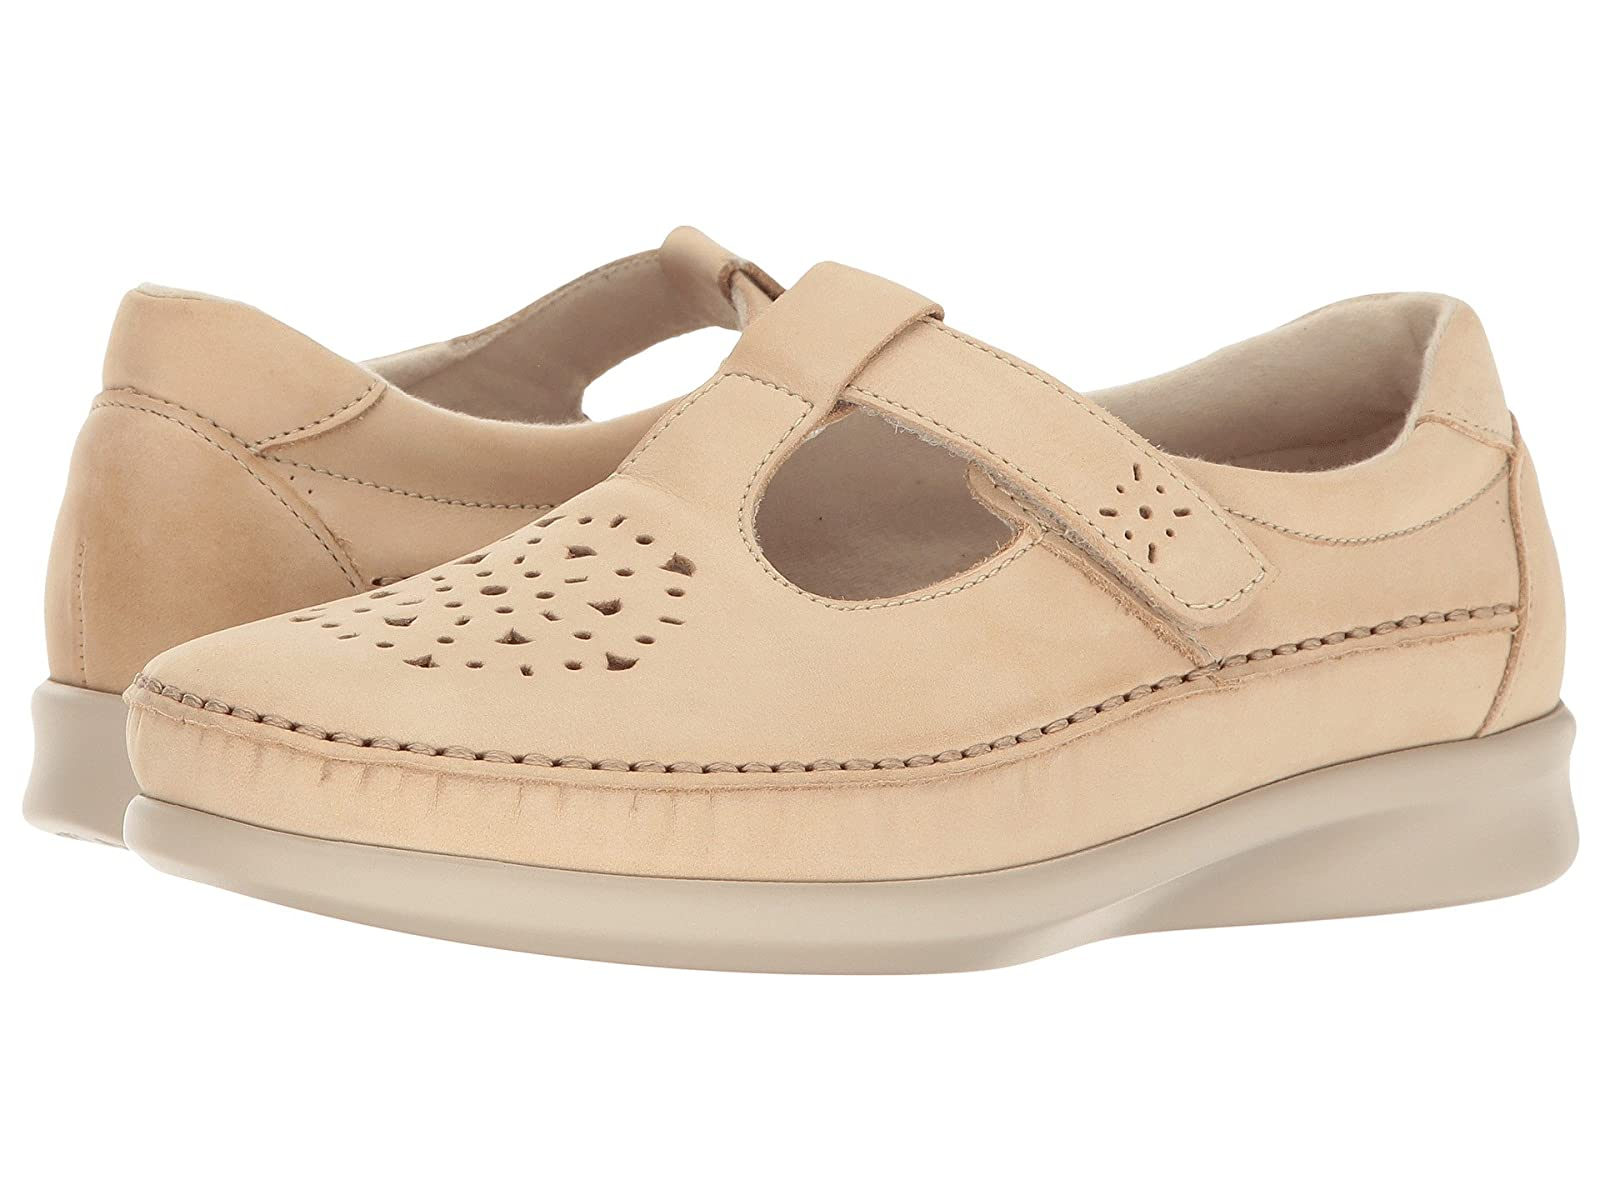 SAS WillowAtmospheric grades have affordable shoes